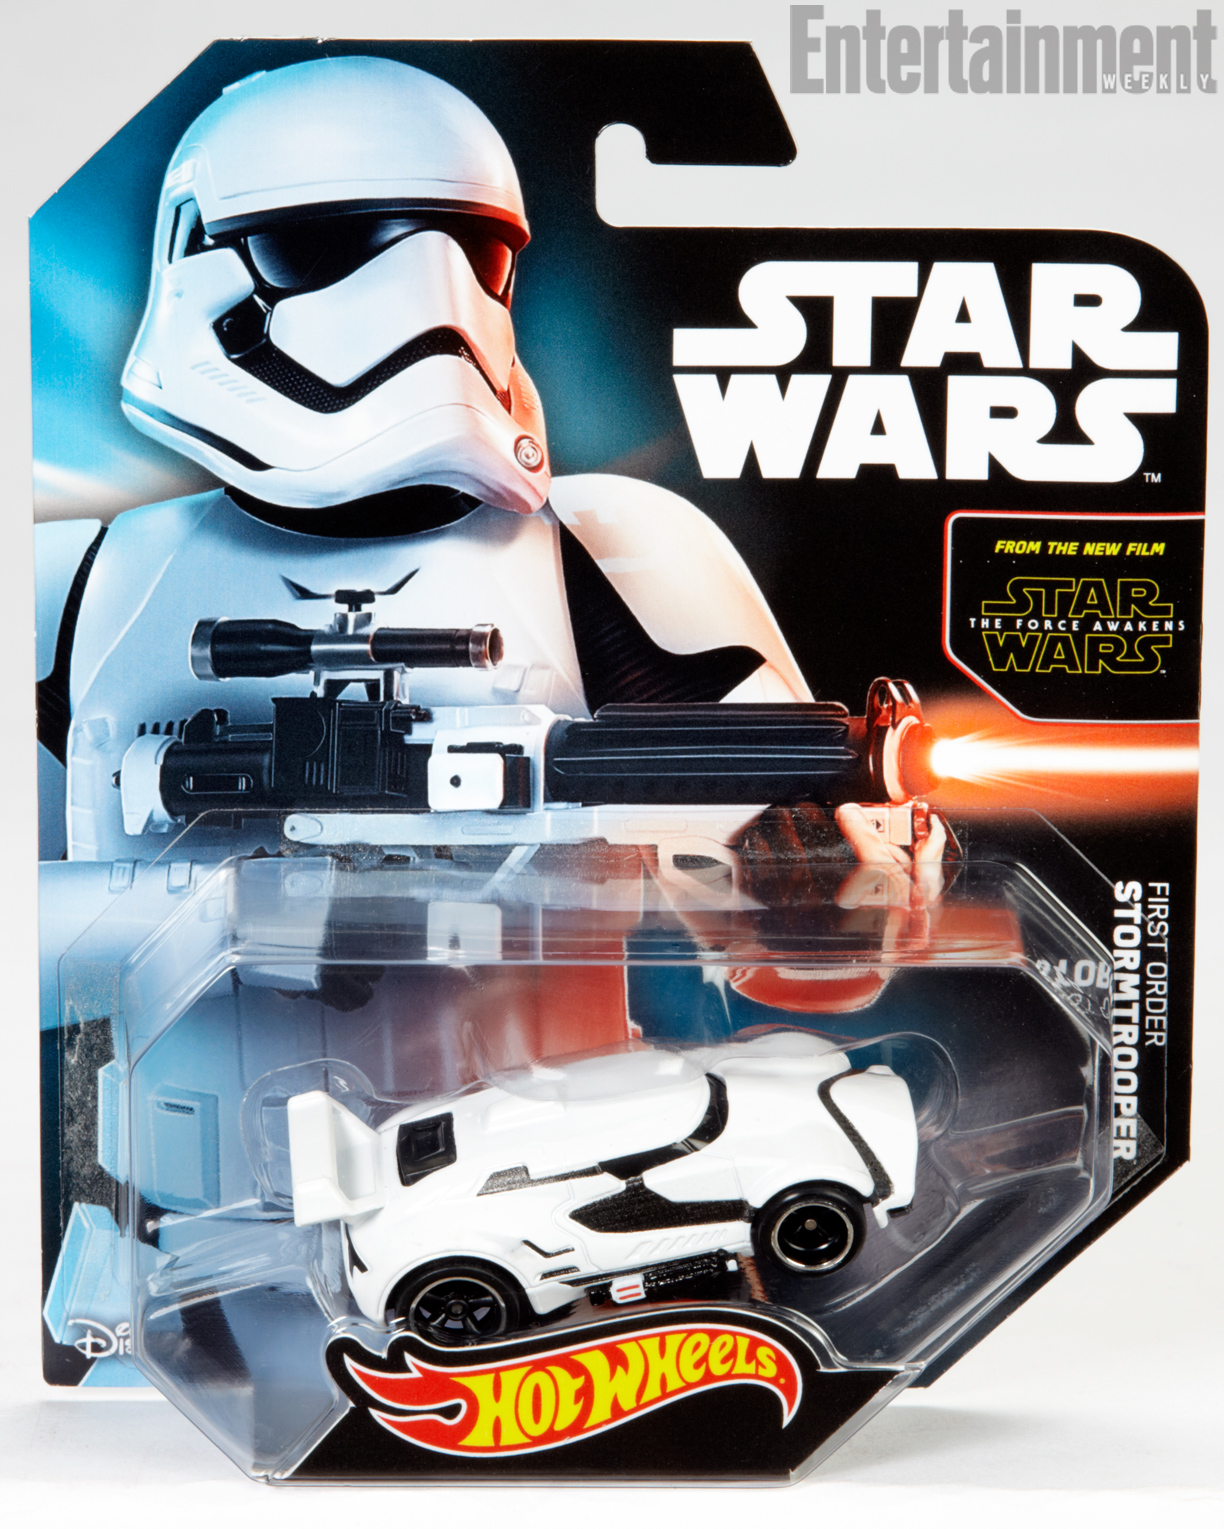 Star Wars Stormtrooper 04